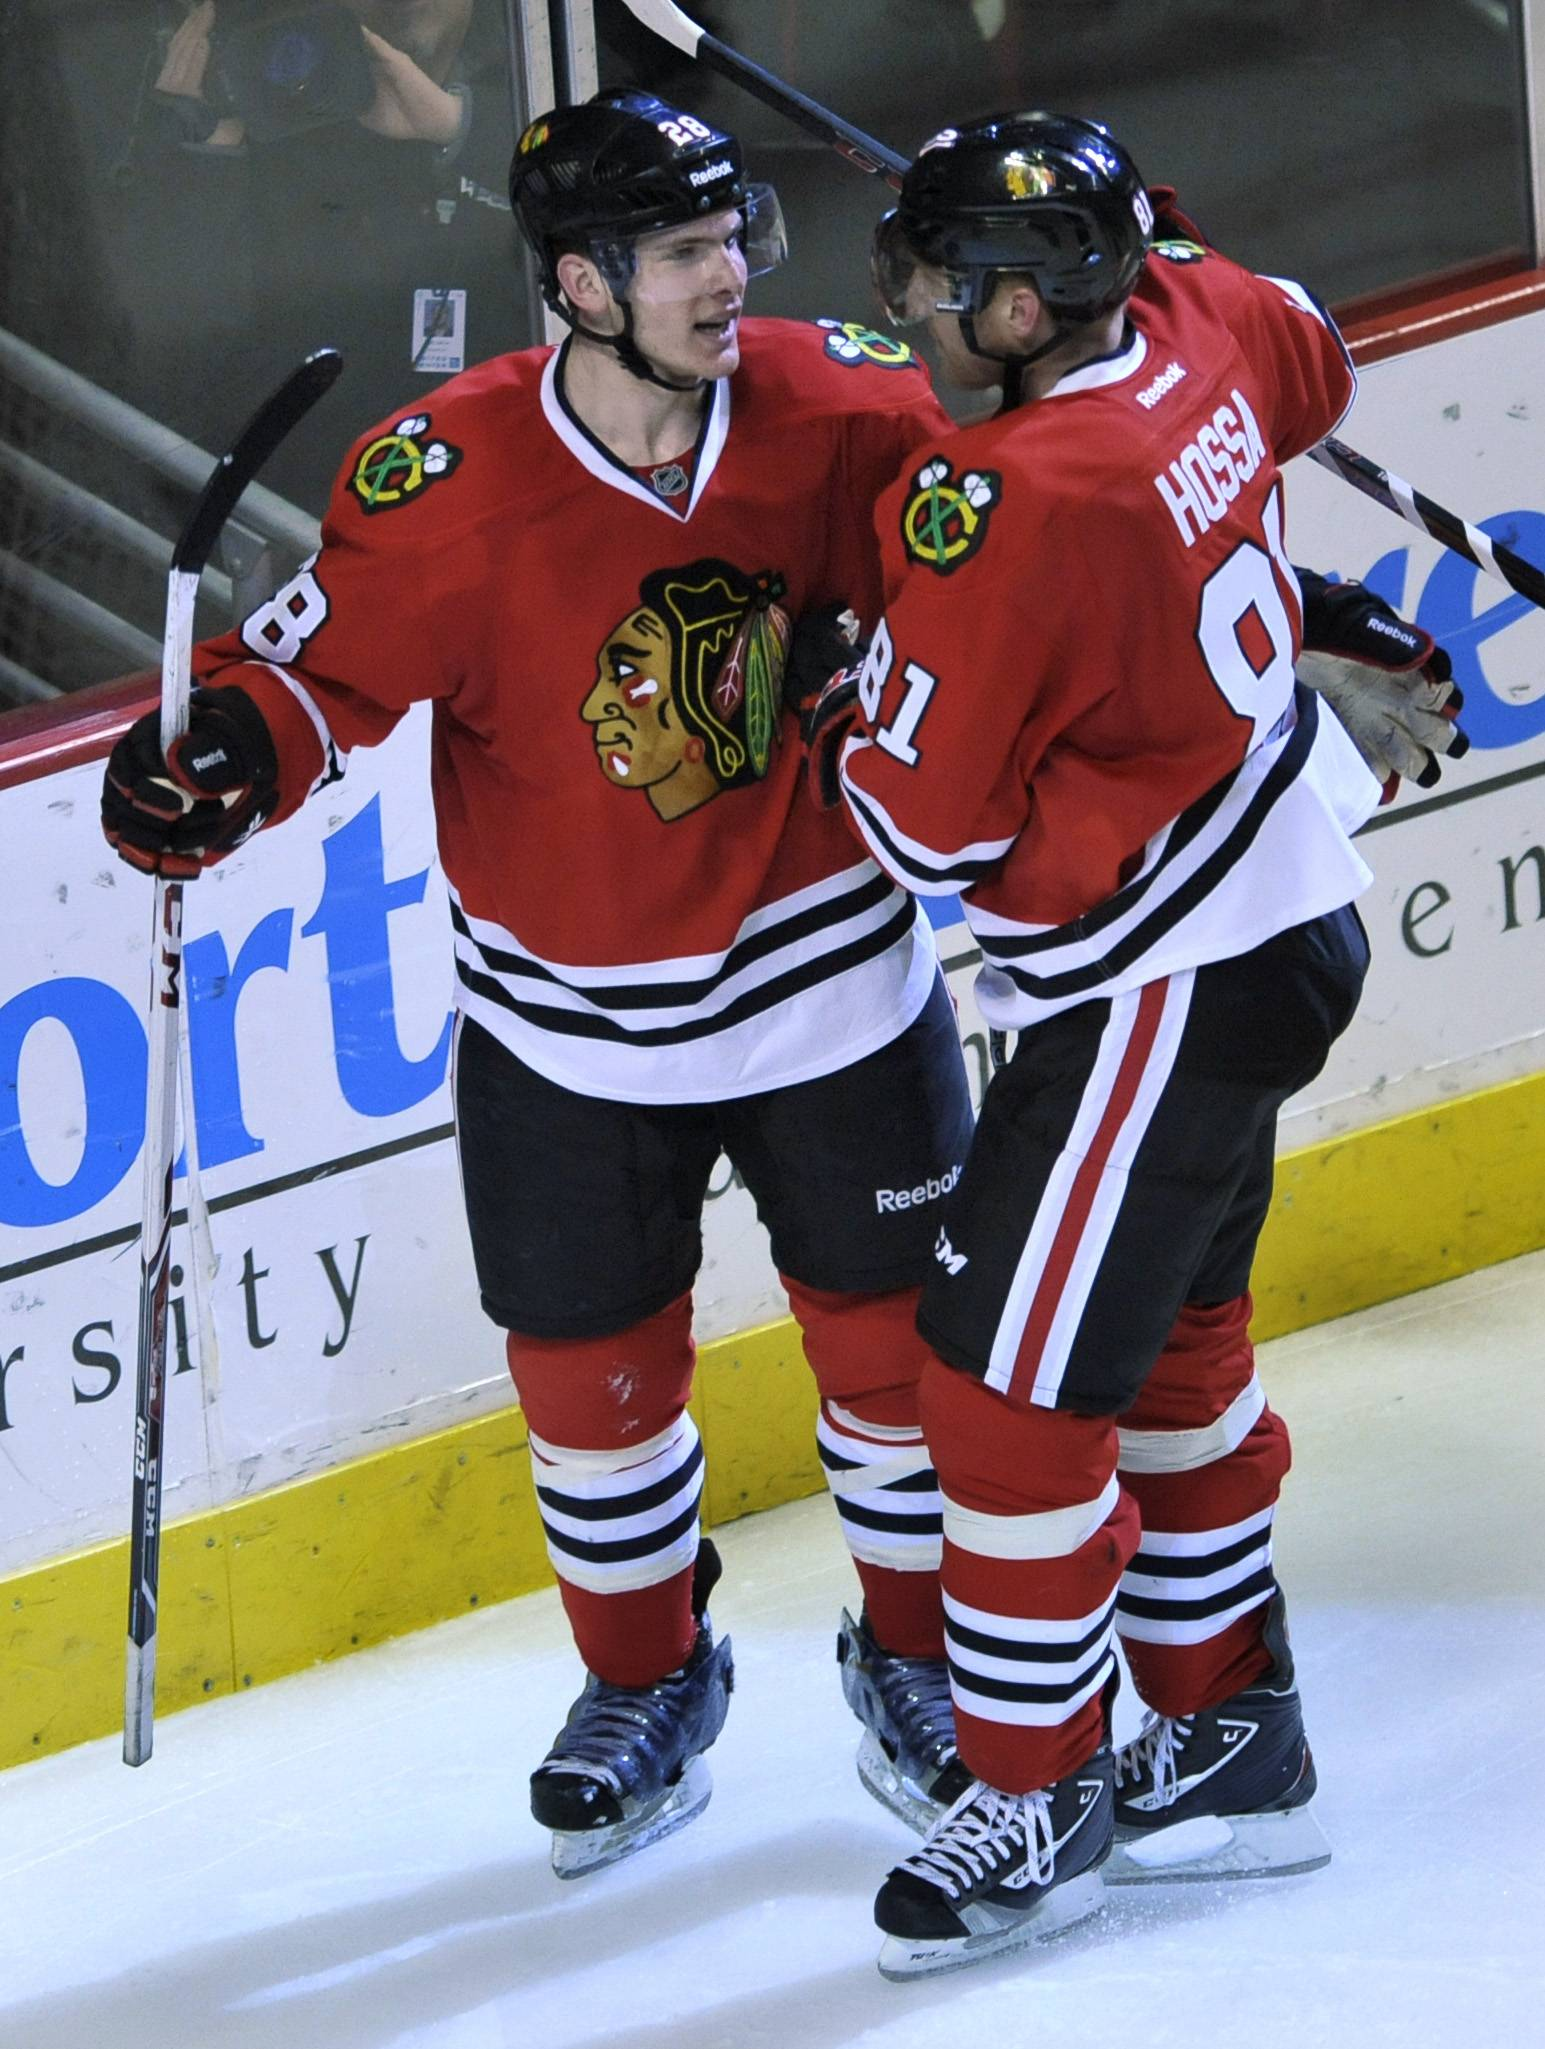 The Blackhawks' Ben Smith (28) celebrates with teammate Marian Hossa after scoring during the third period to make it 4-0 over the Blues on Wednesday night.